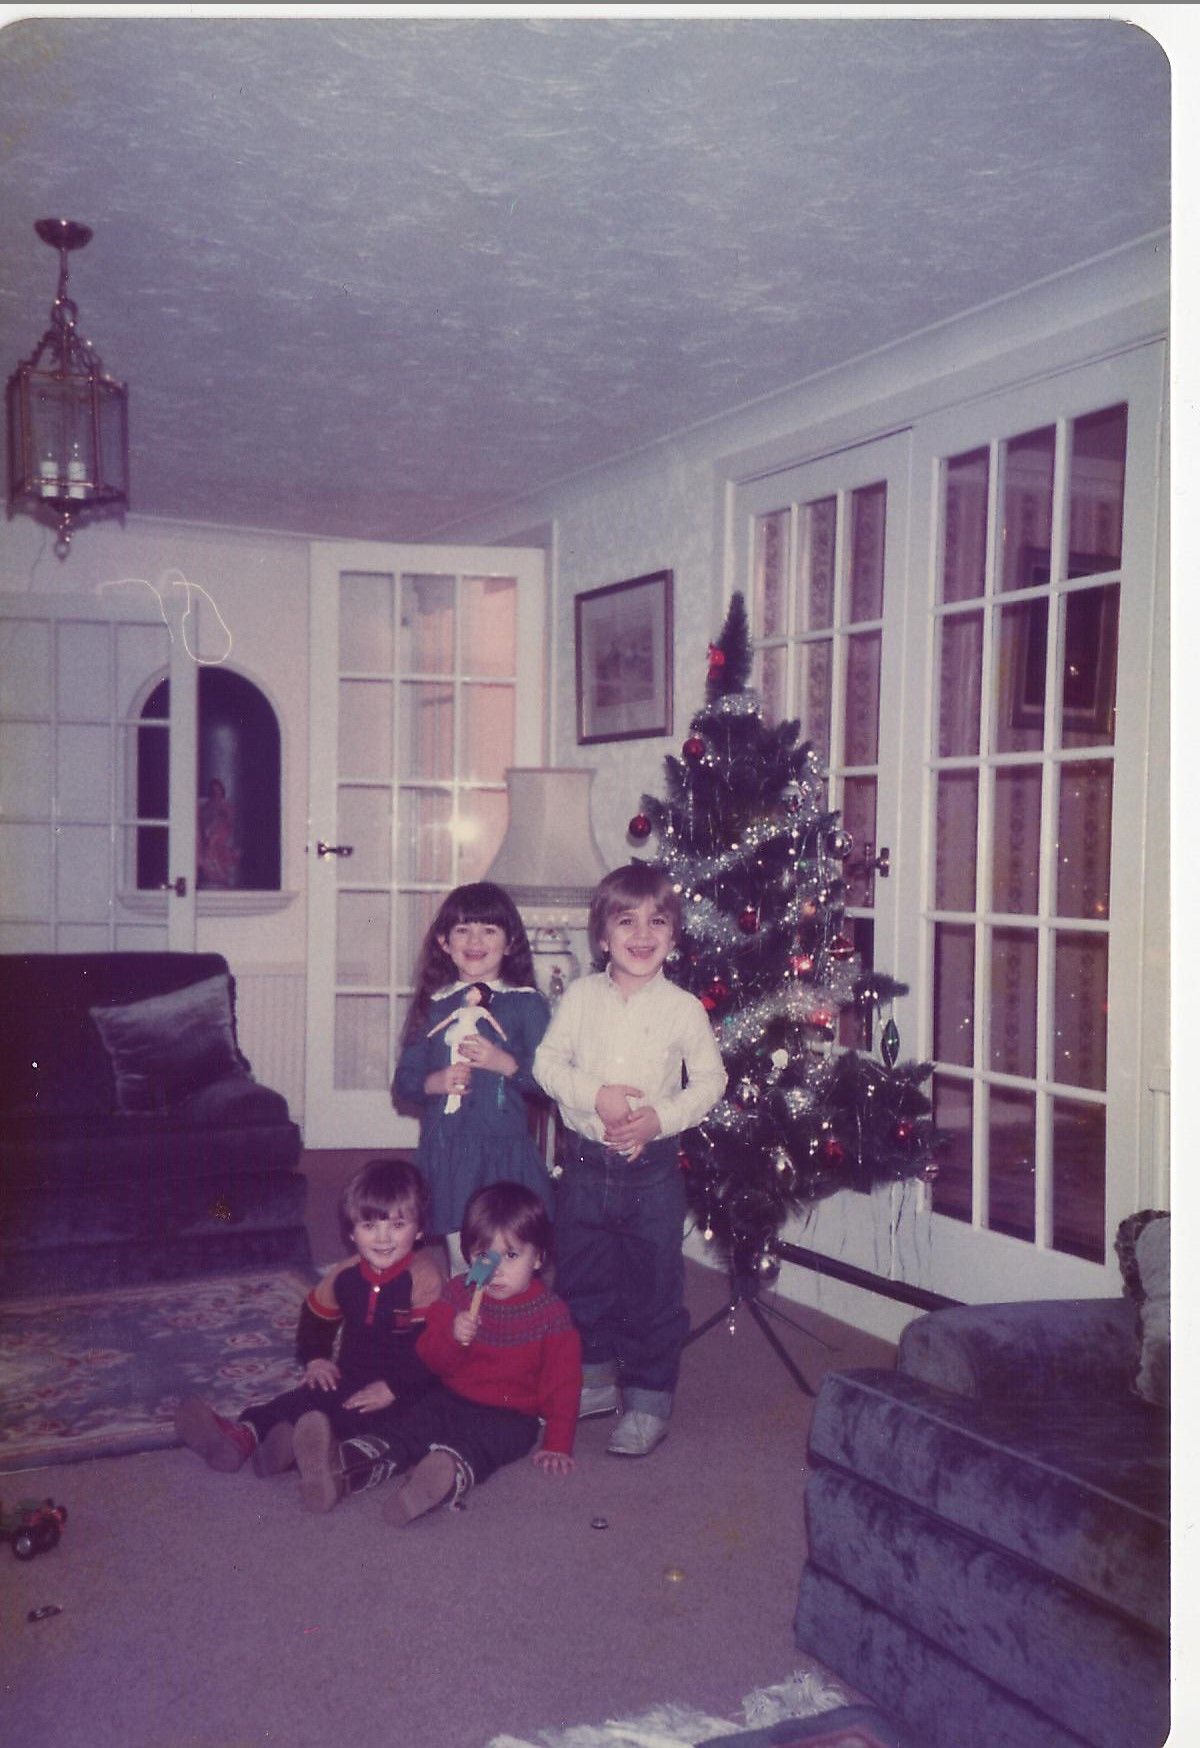 Me, my brother & 2 cousins on Christmas day circa 1986